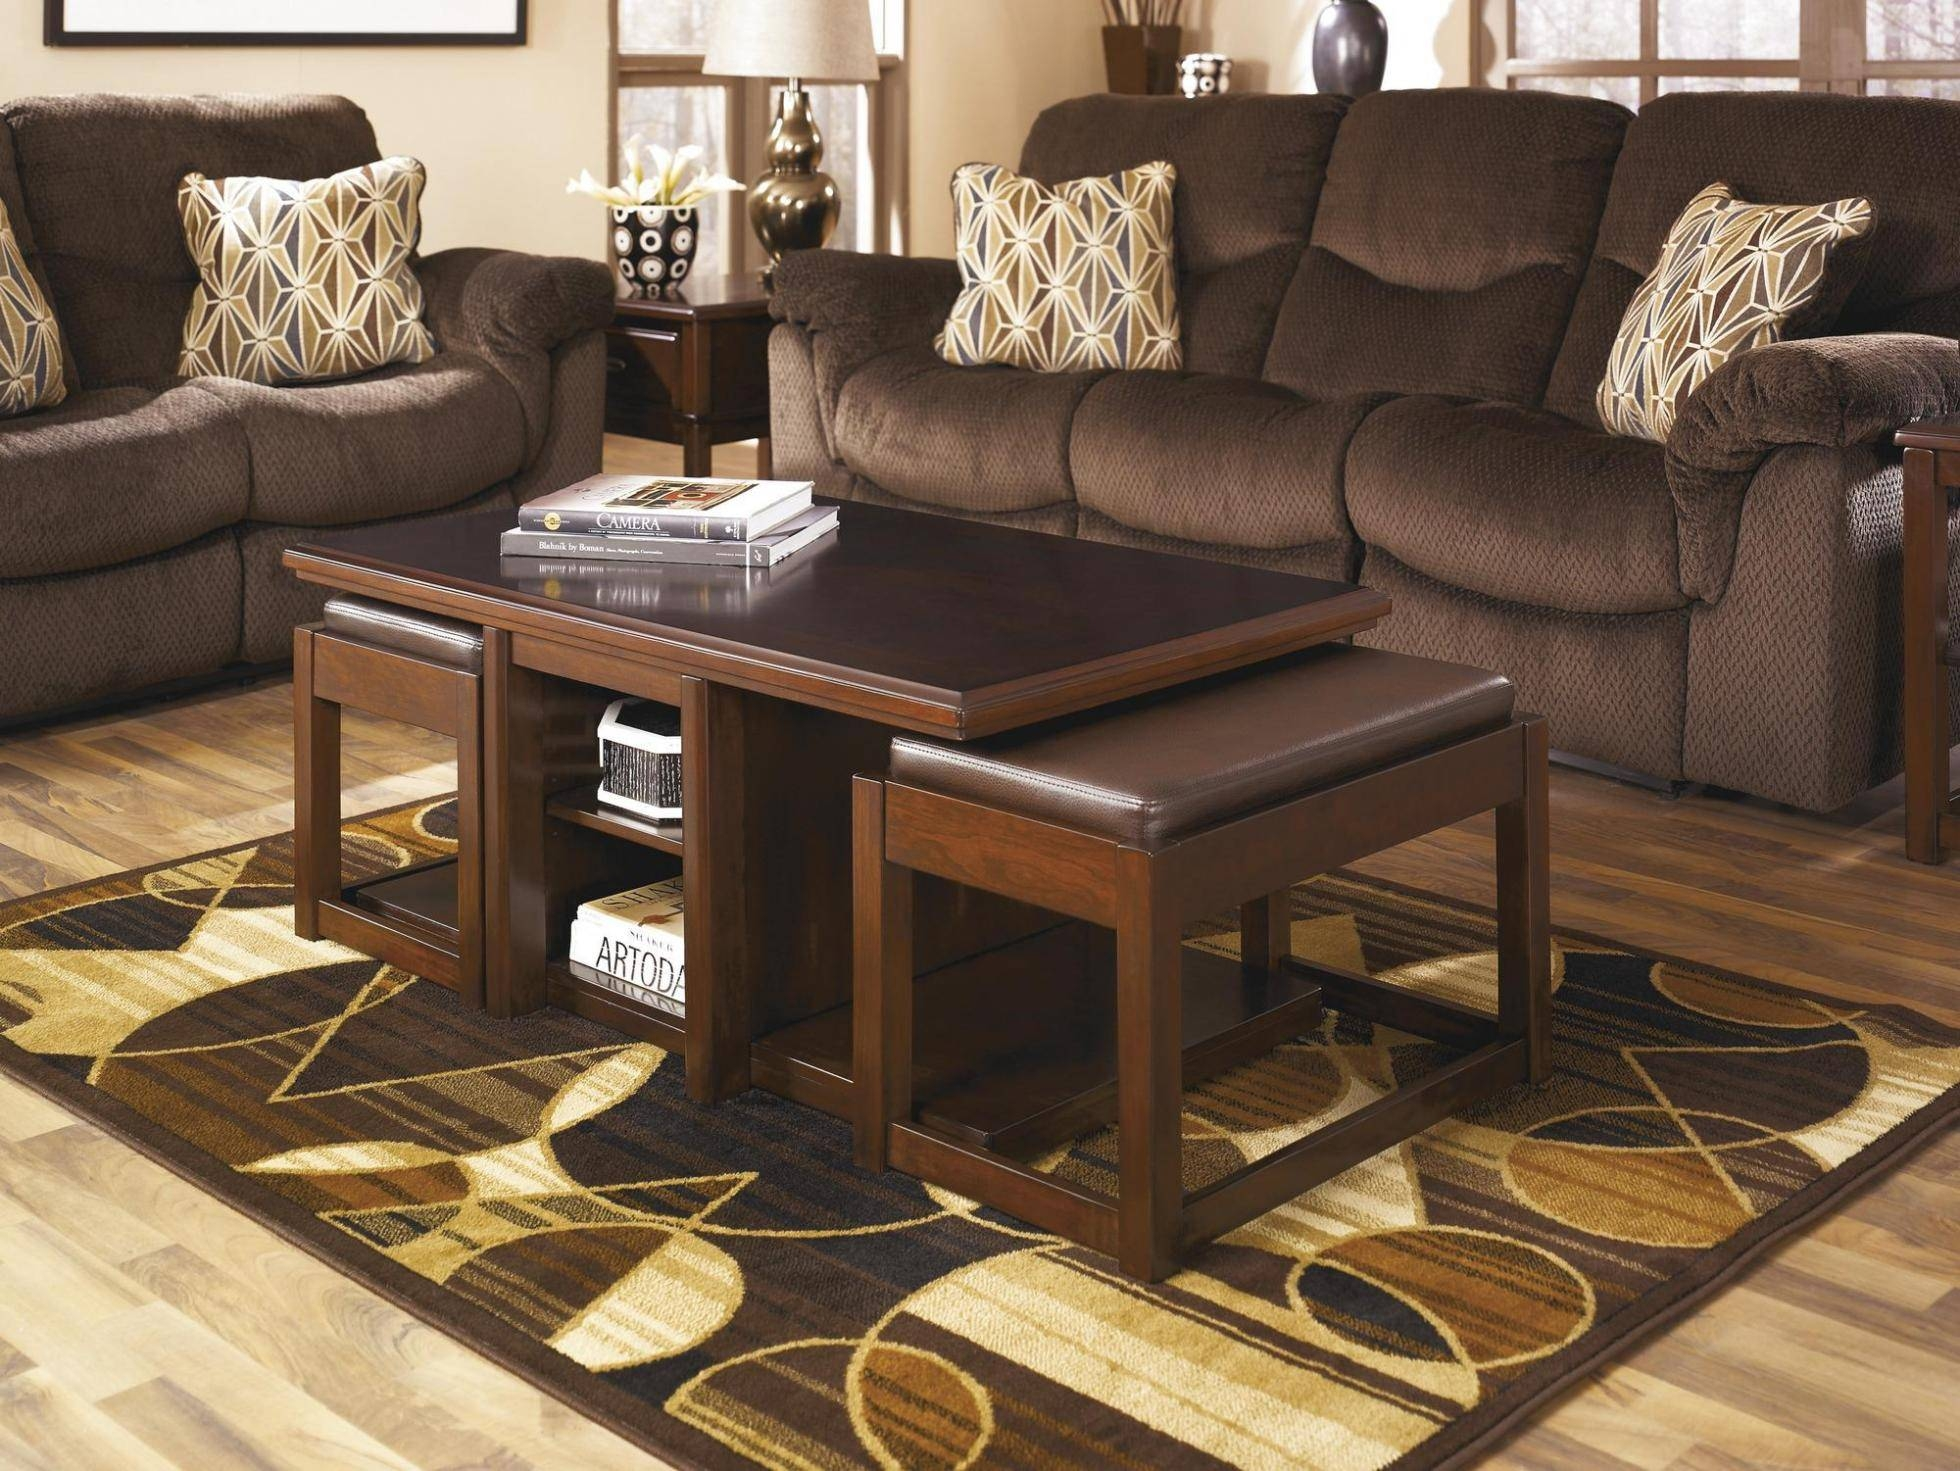 Furniture: Luxury Coffee Table With Stools For Living Room Regarding Coffee Tables With Nesting Stools (View 12 of 30)